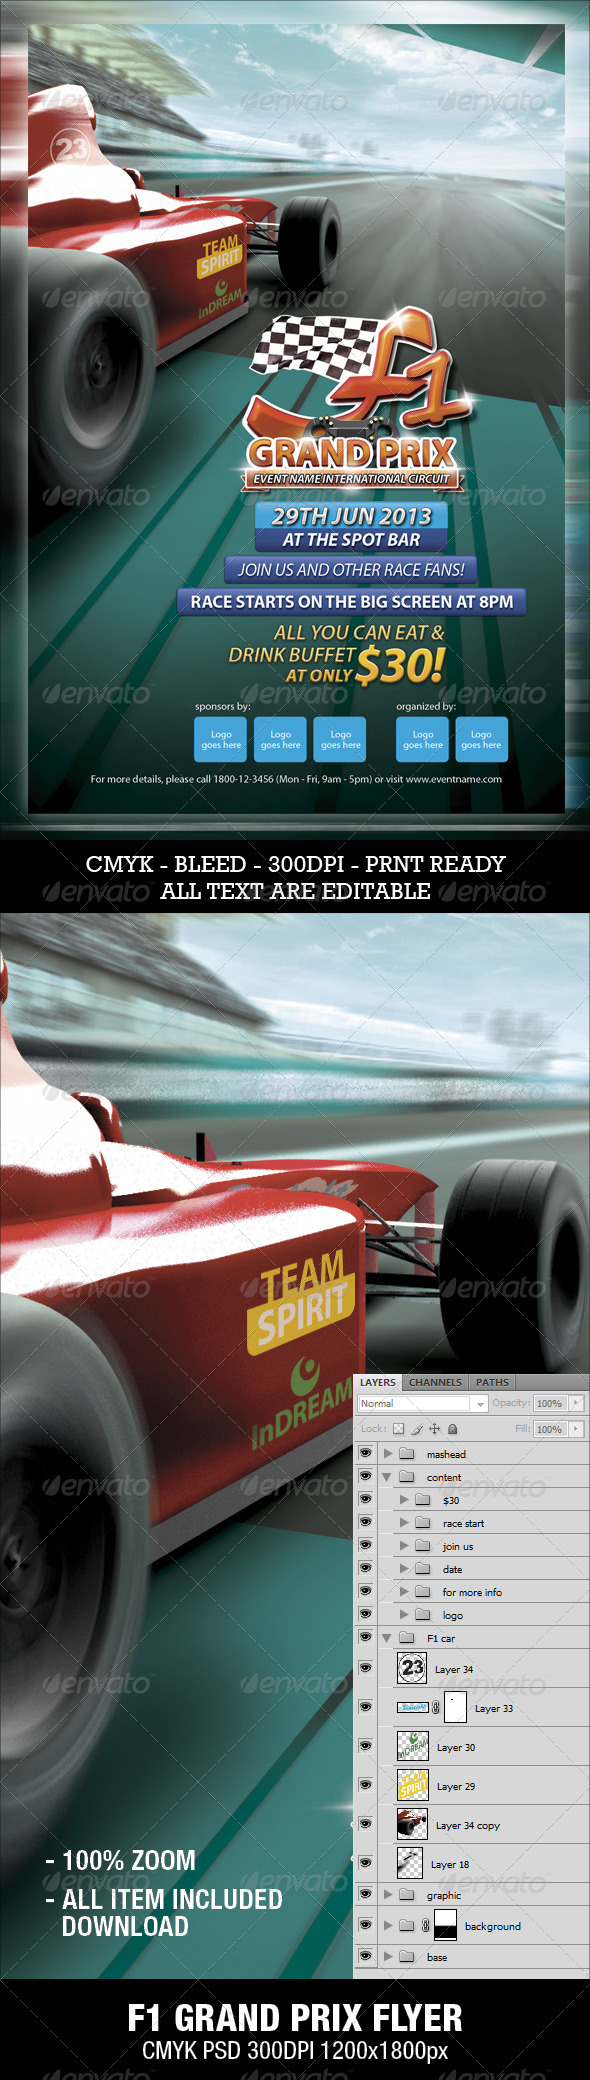 GraphicRiver F1 Grand Prix Flyer 3286111